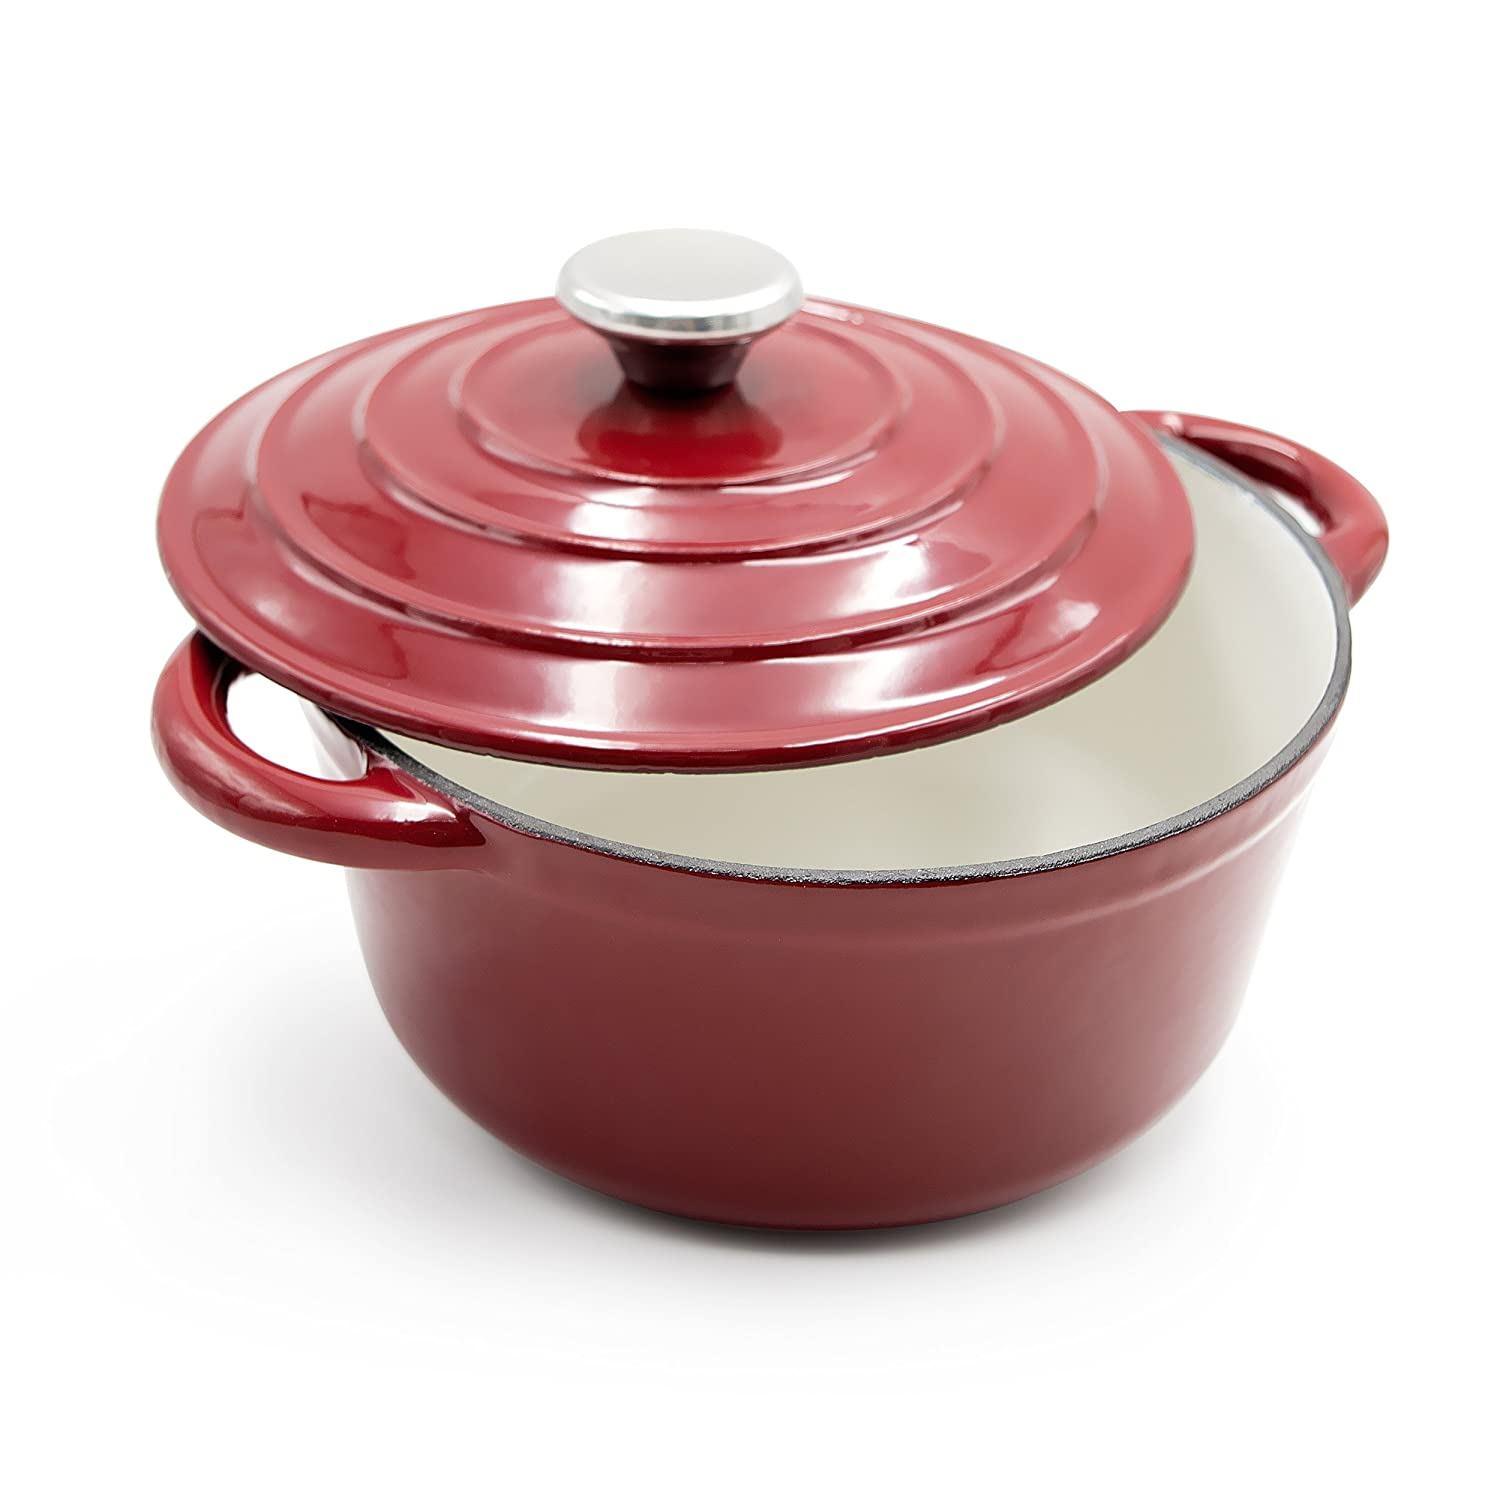 AIDEA Enameled Cast Iron Dutch Oven - 5-Quart Burgundy Red Round Ceramic Coated Cookware French Oven with Self Basting Lid